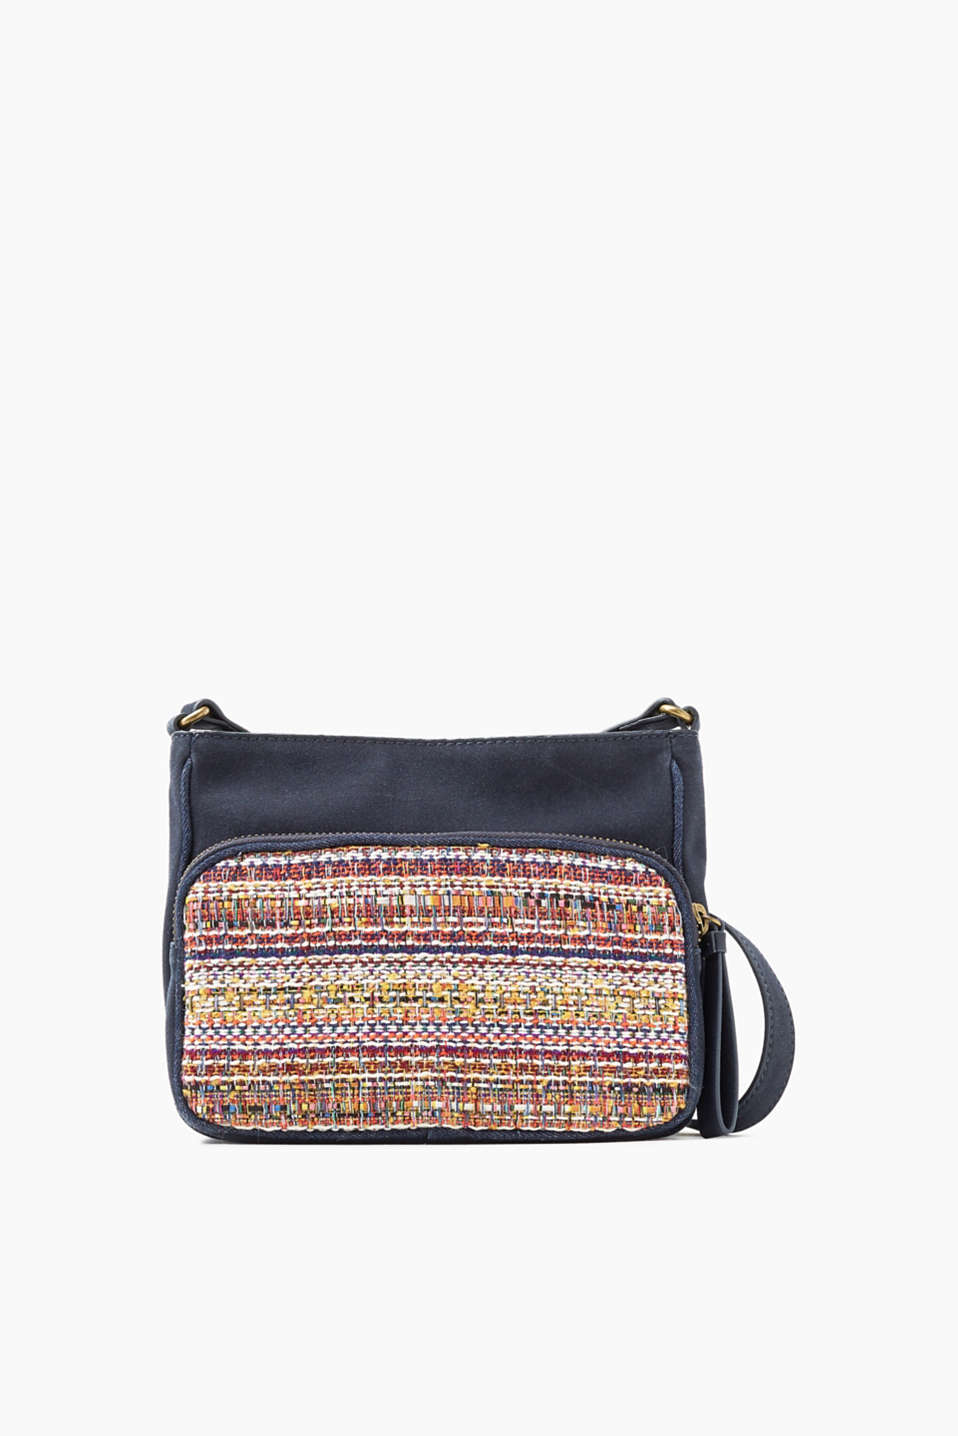 Shoulder bag with a length-adjustable shoulder strap and striking tweed and denim